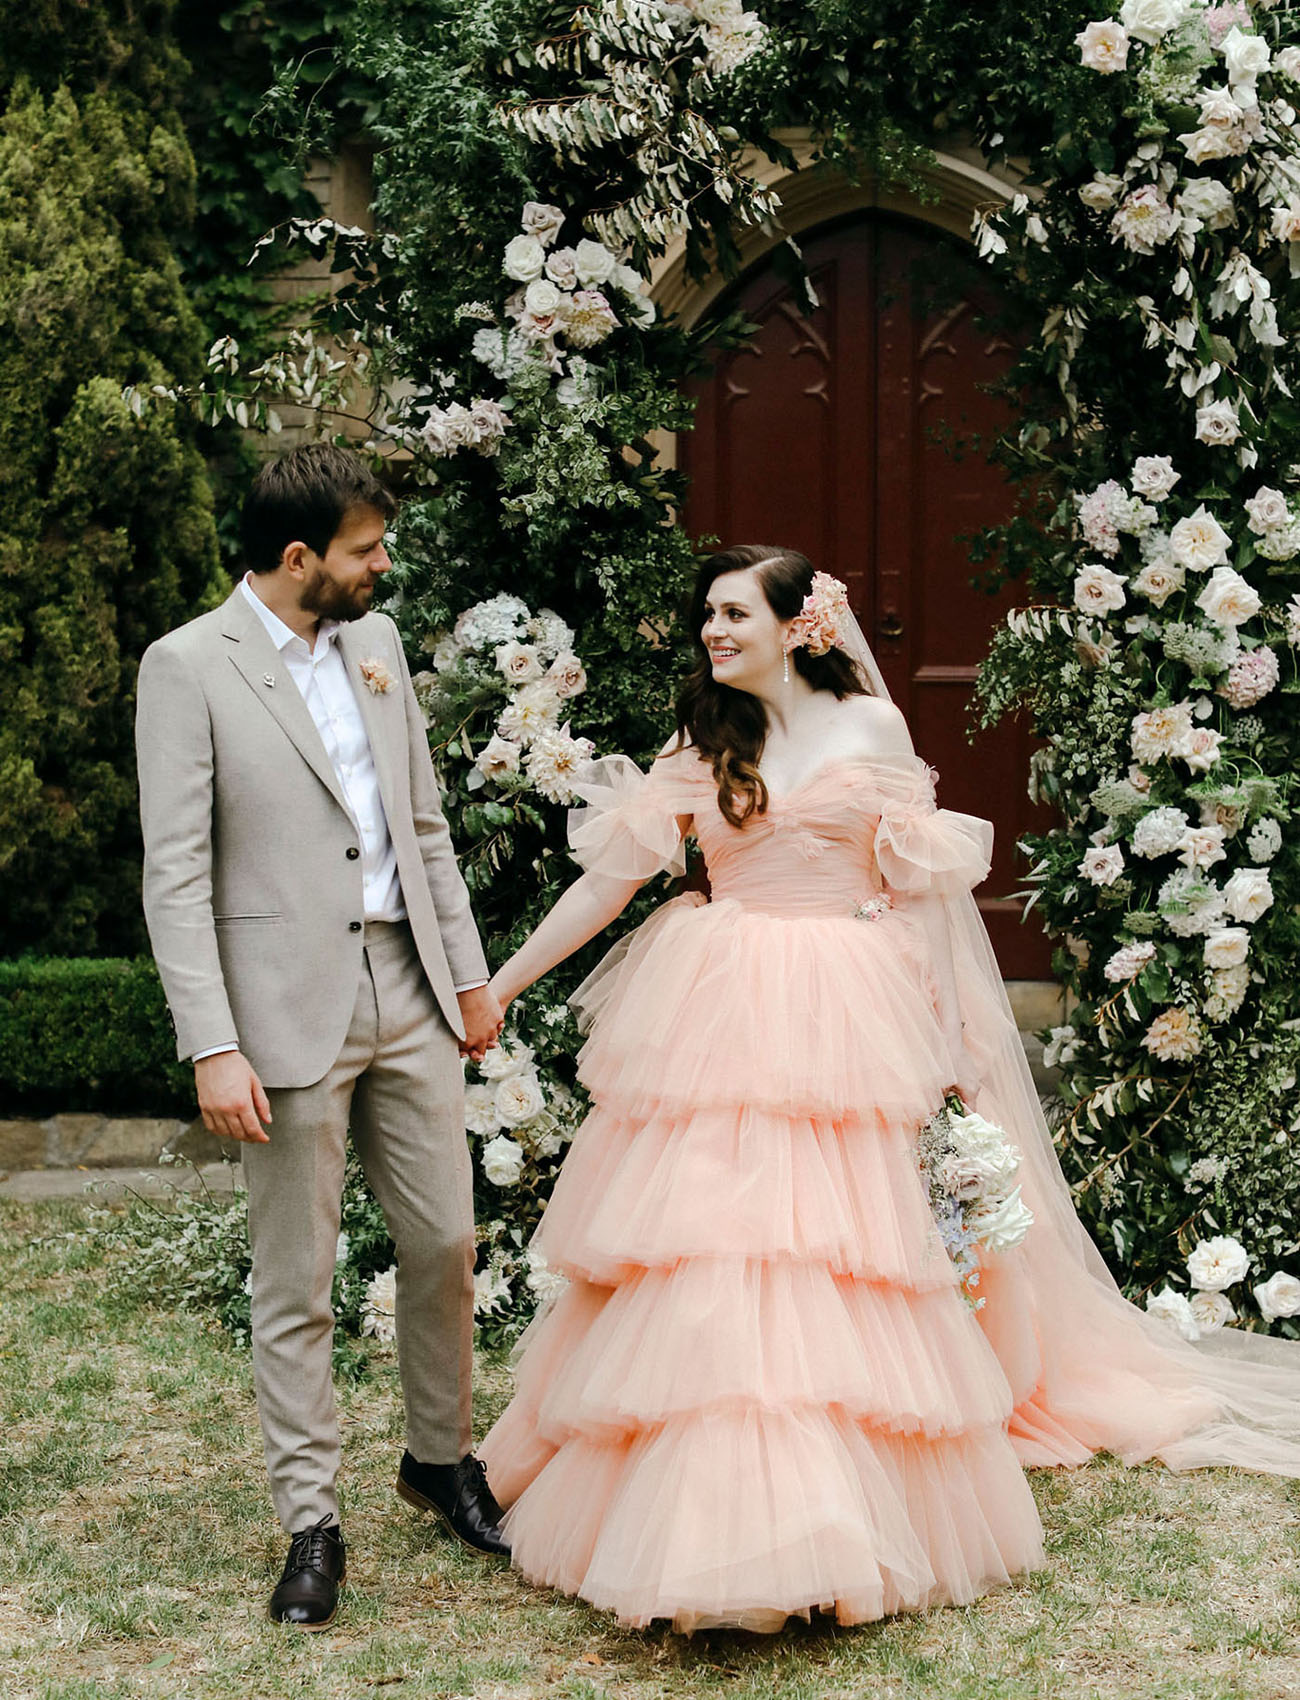 Magical Garden Wedding in Australia